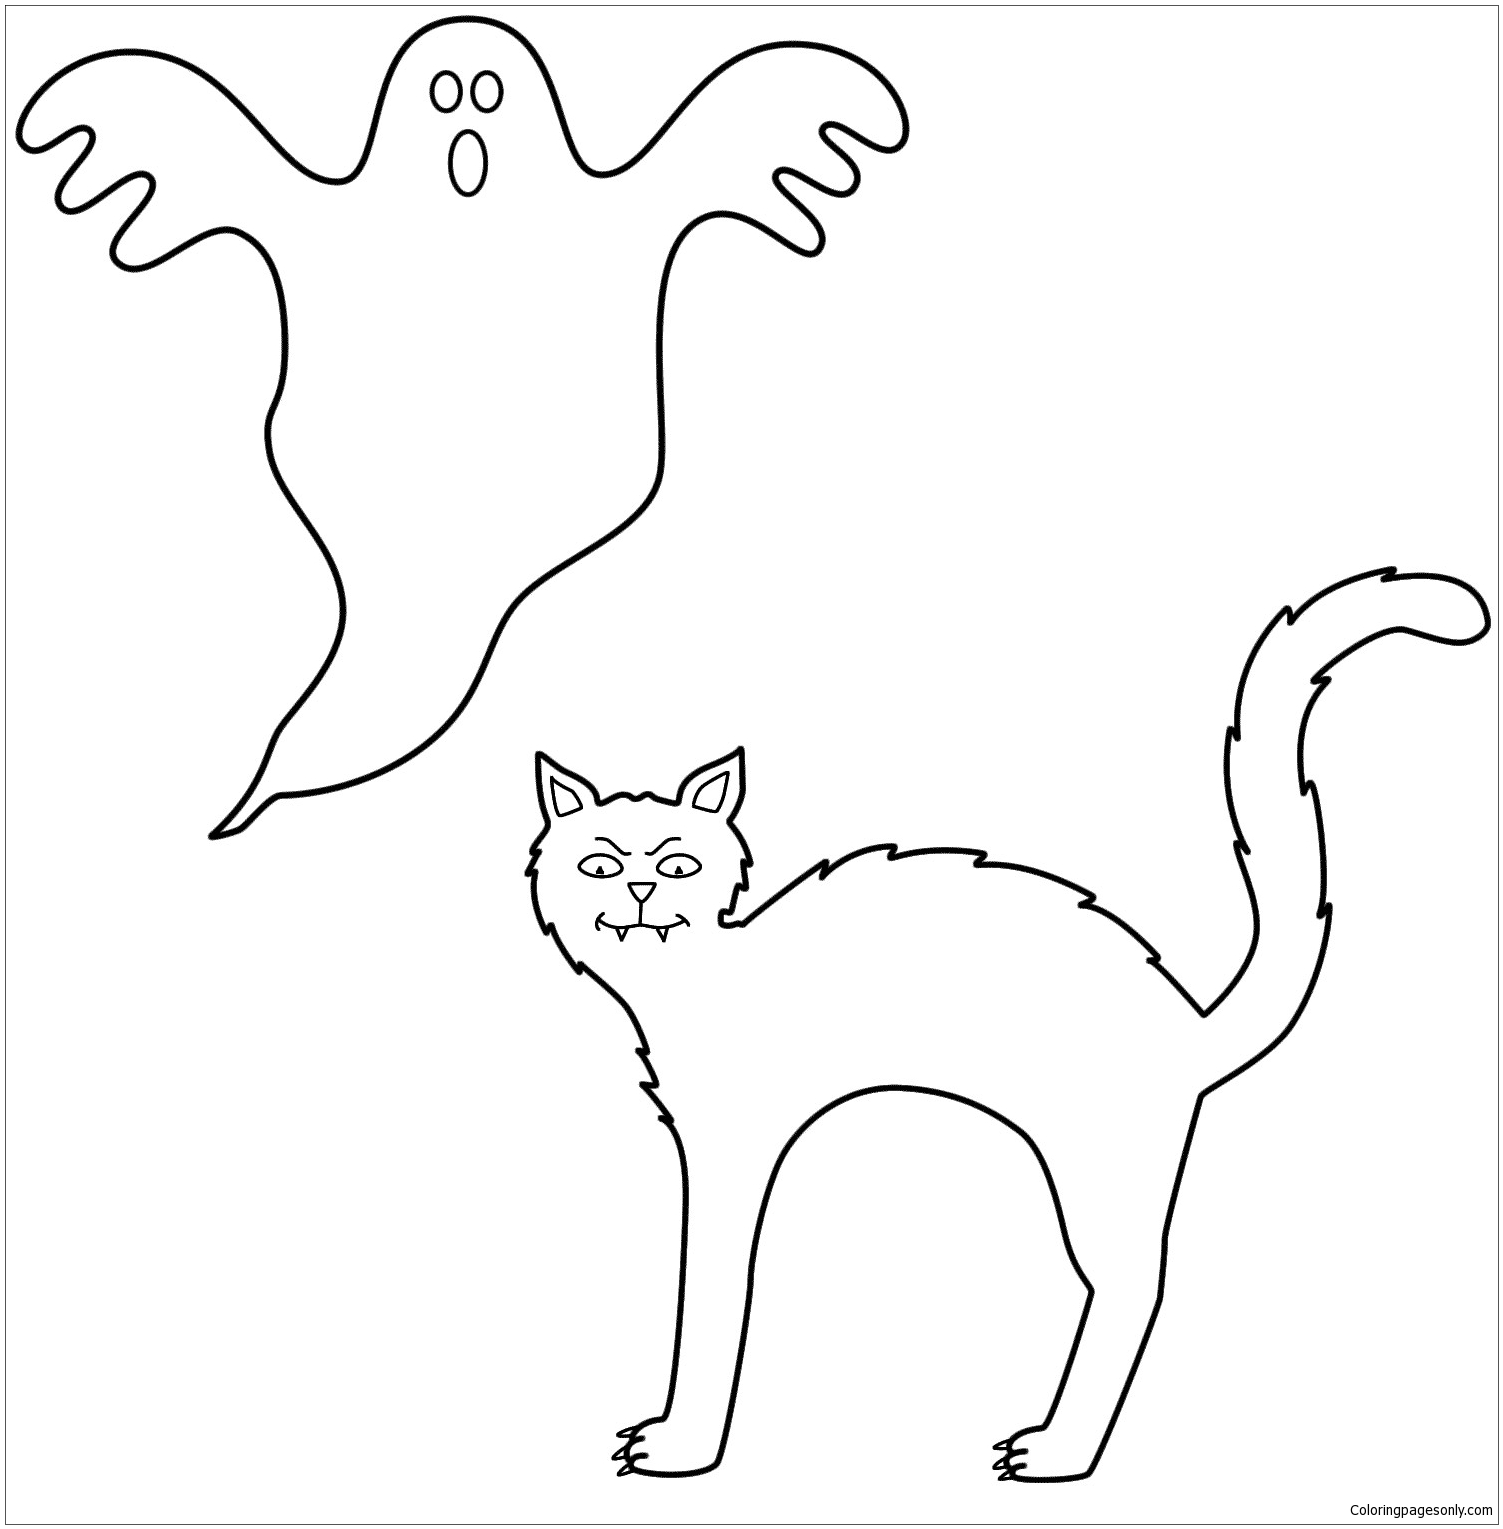 Black Cat Halloween Coloring Pages Holidays Coloring Pages Free Printable Coloring Pages Online